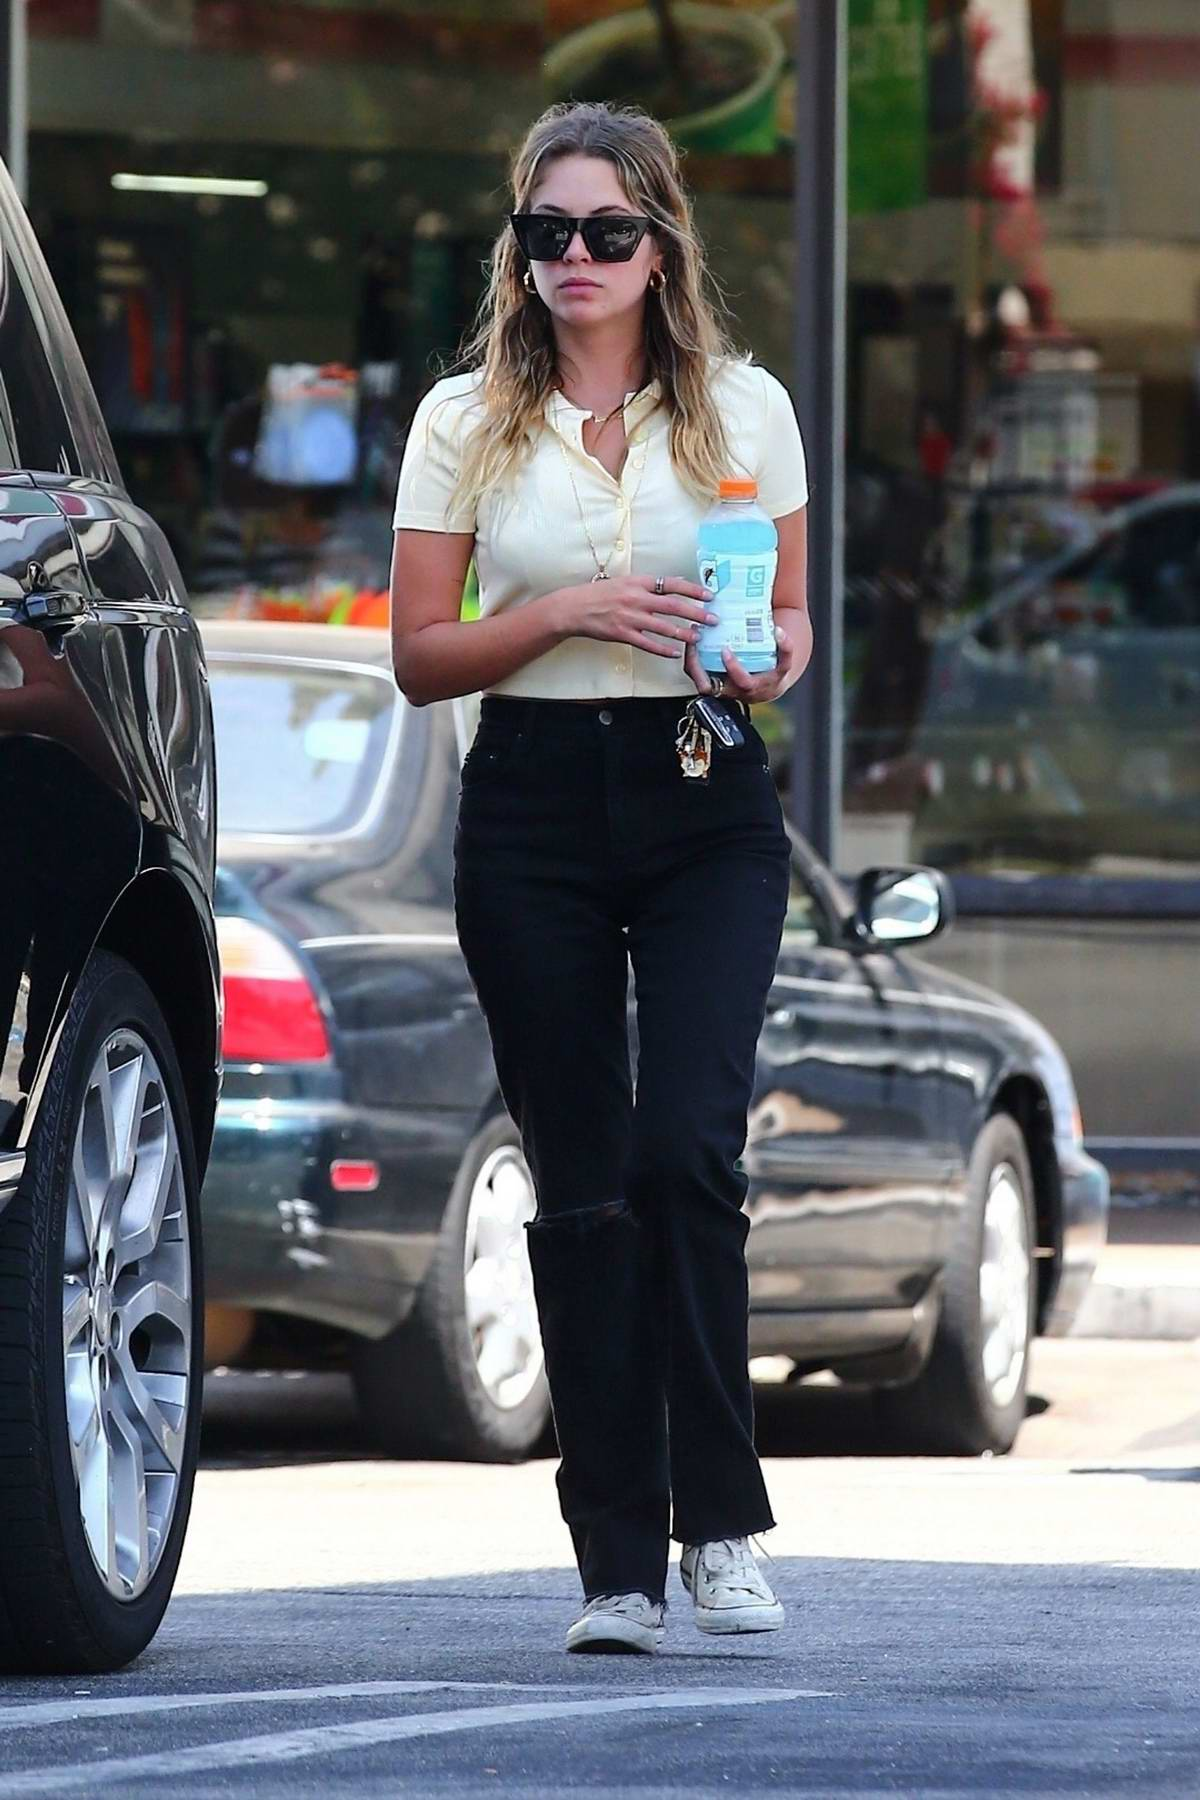 Ashley Benson grabs a drink at 7 Eleven before visiting a nail salon in Studio City, Los Angeles